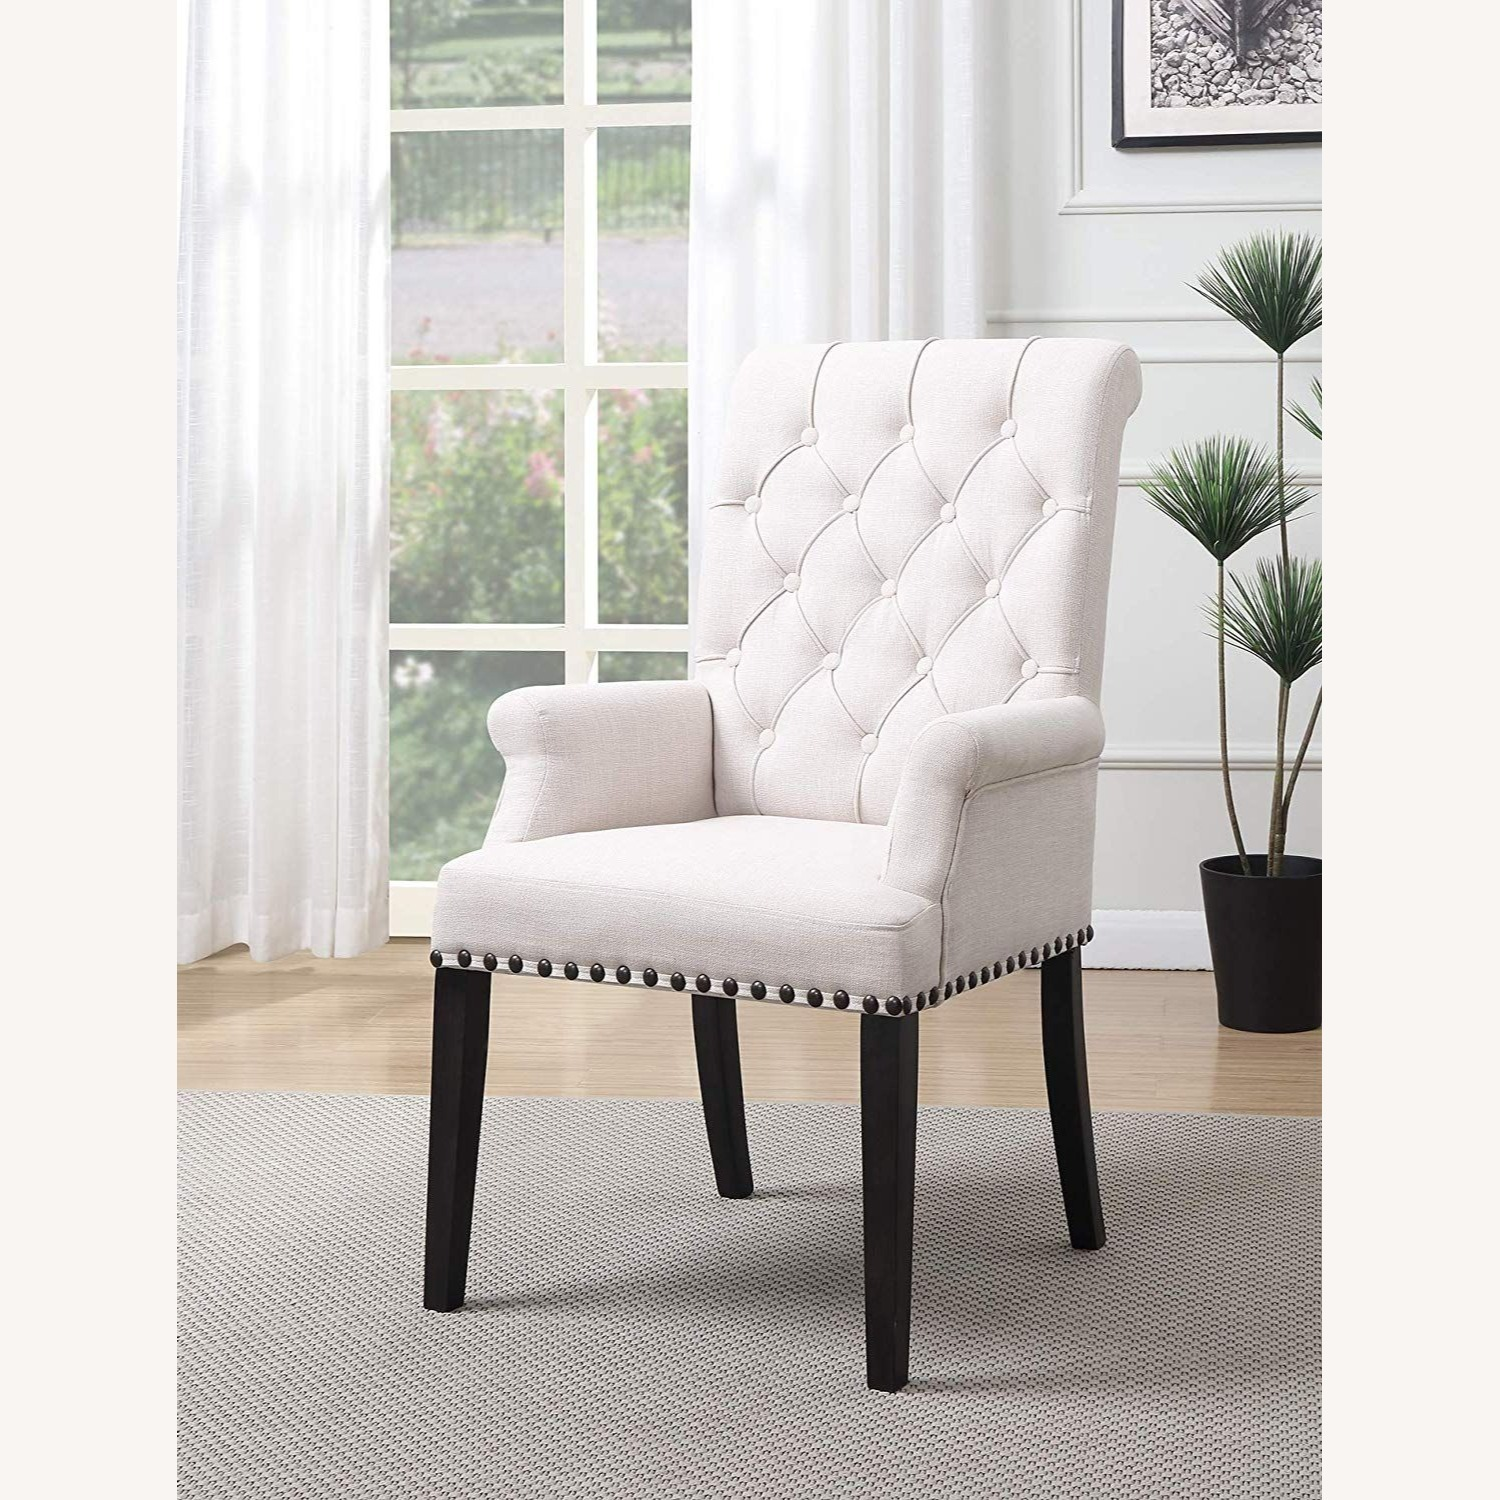 Upholstered Arm Chair In Beige Fabric - image-4